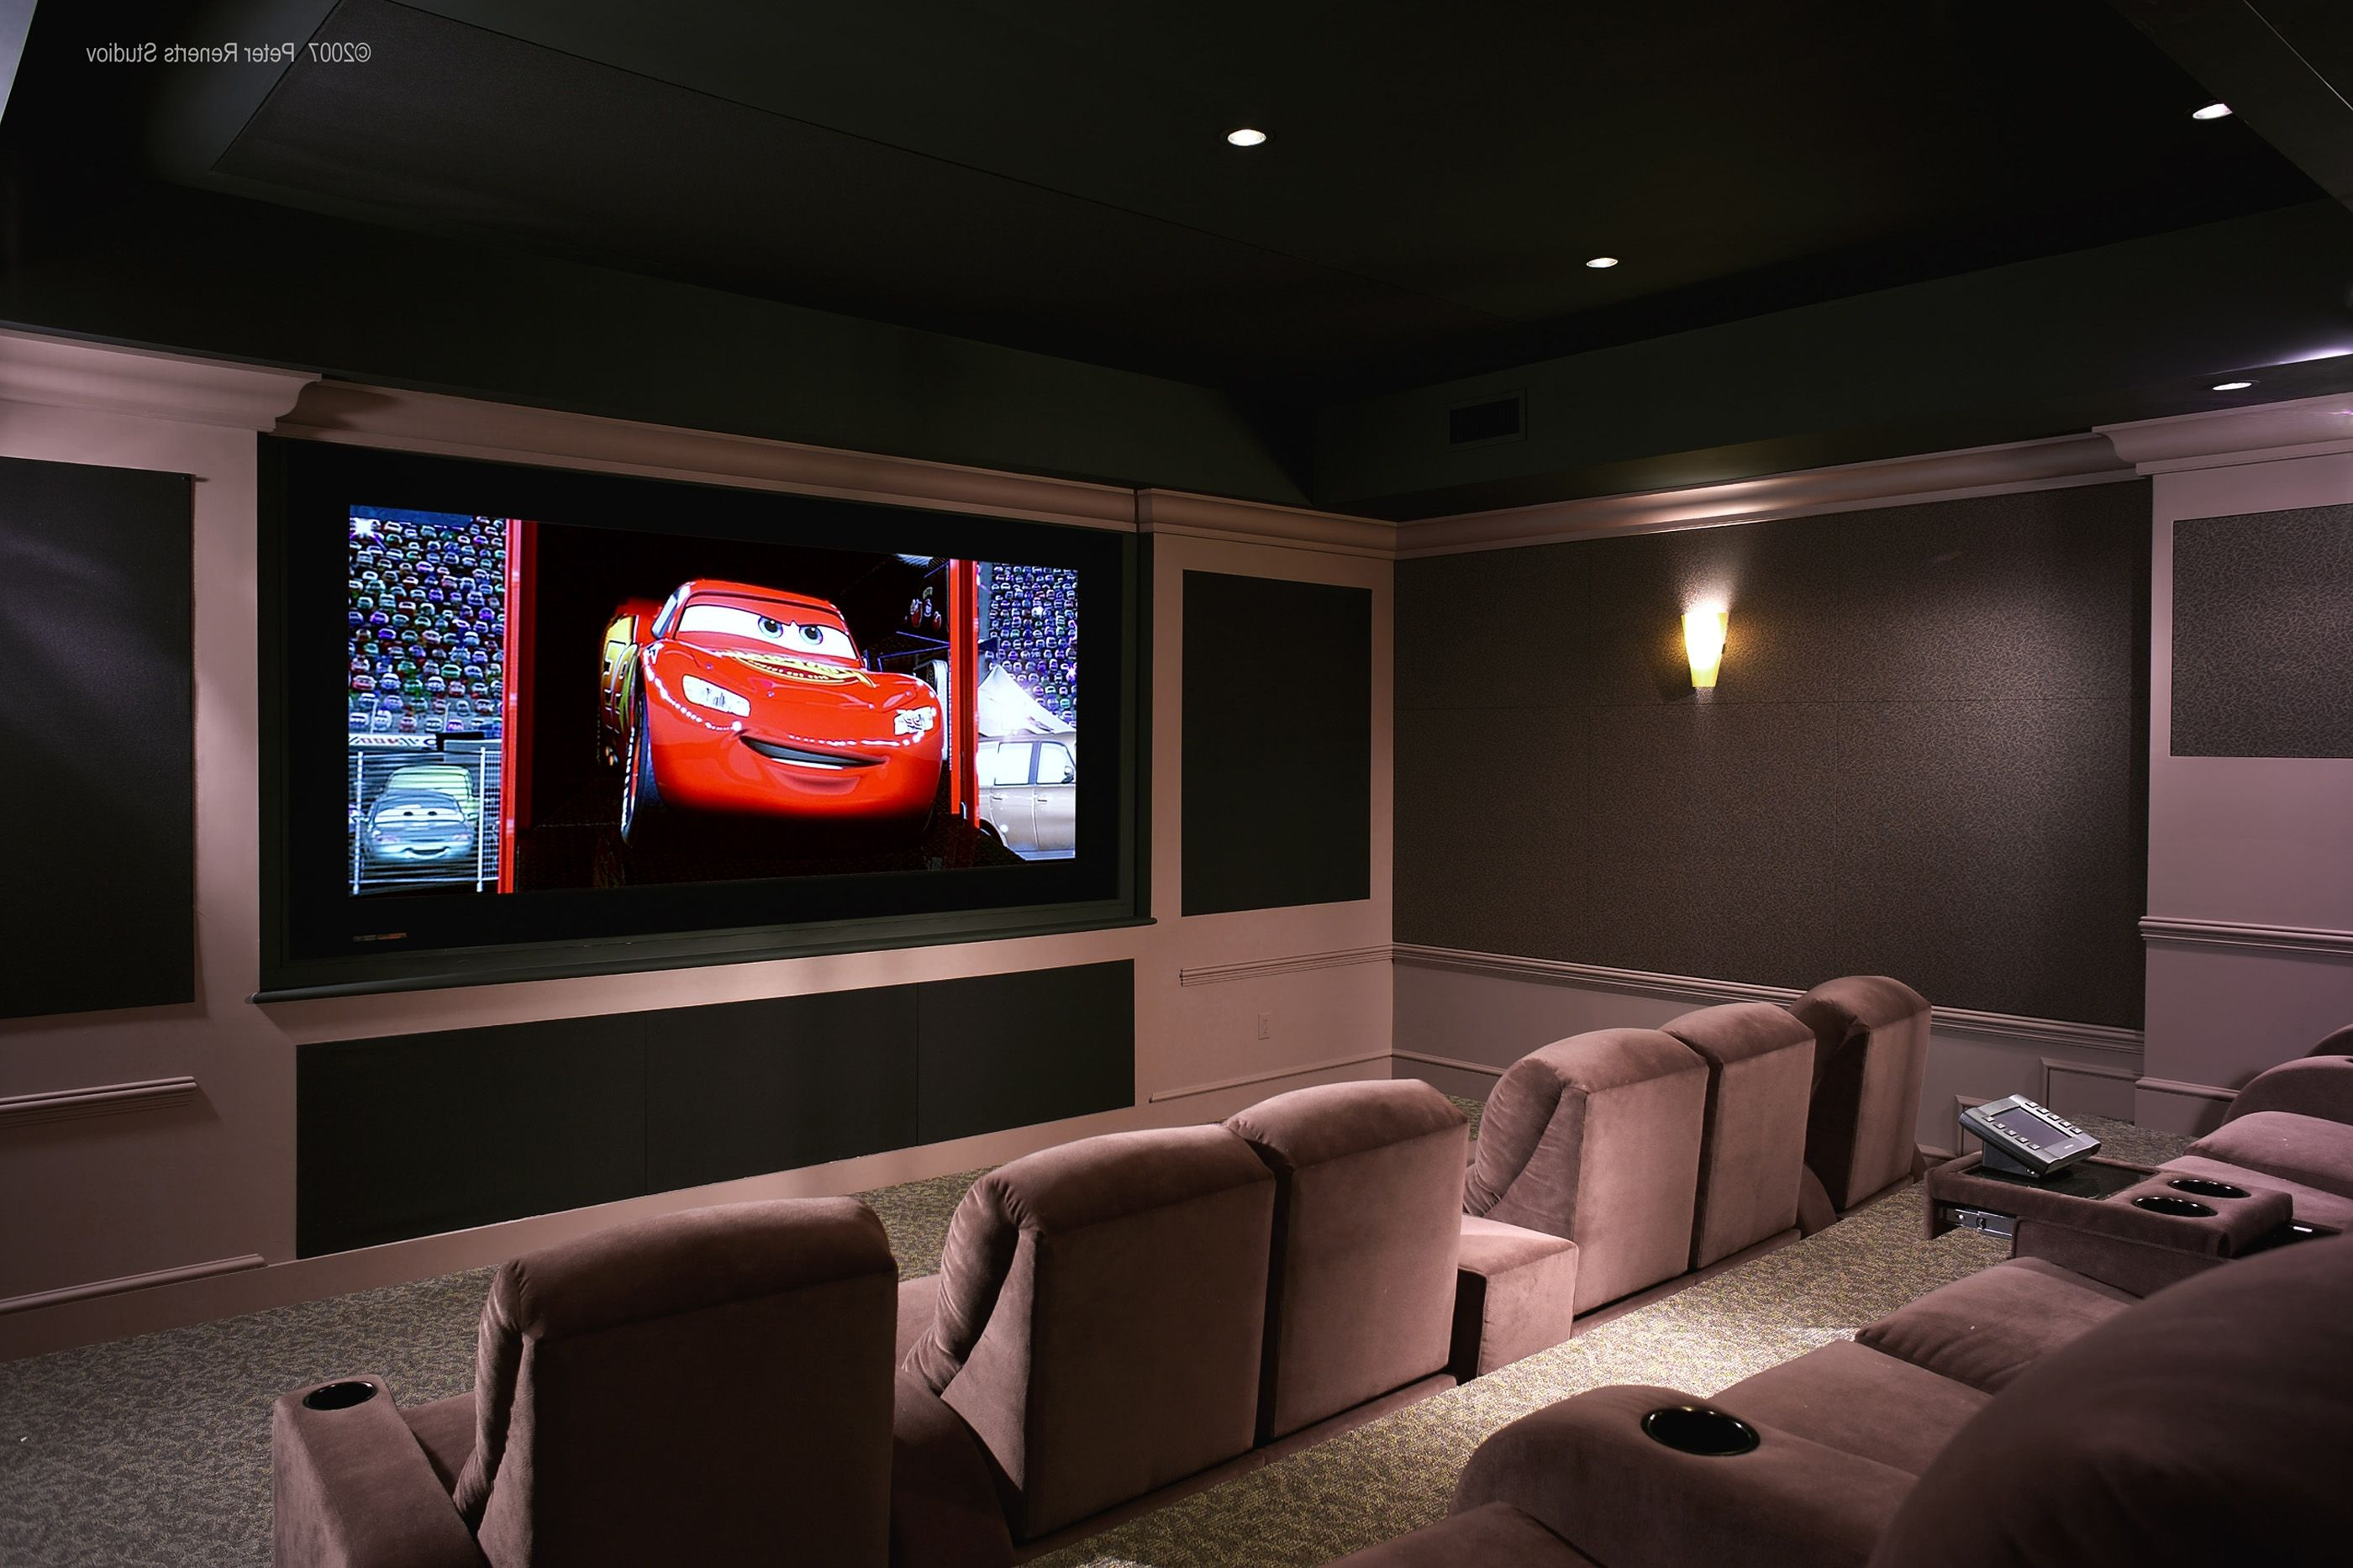 Home Theater Room Design Modern Home Design Small Home Cinema Room Backgrounds